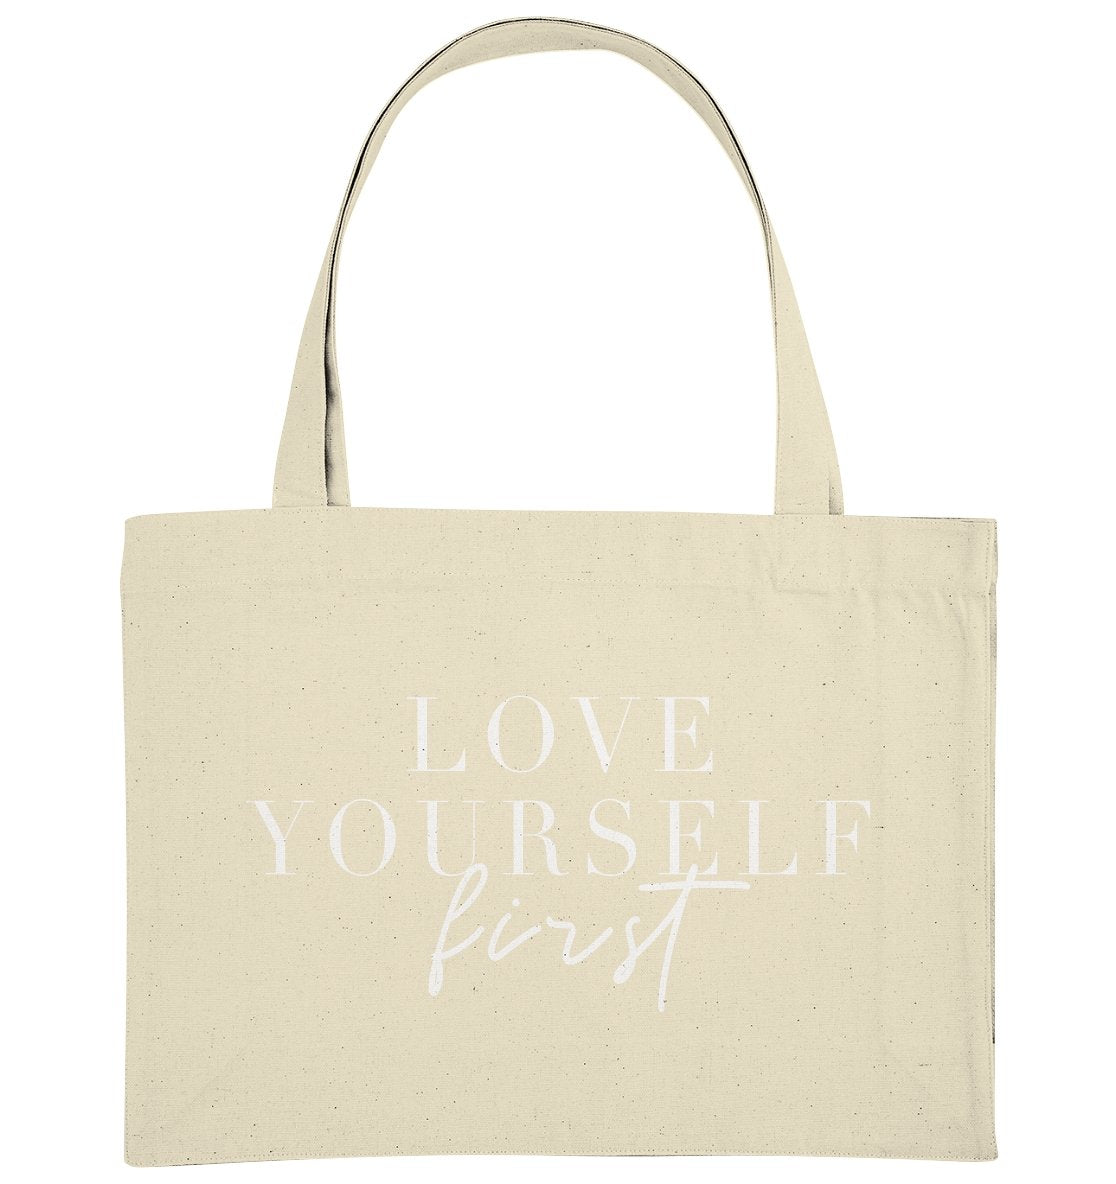 LOVE YOURSELF FIRST - Organic Shopping-Bag - FAMILY BY HEART